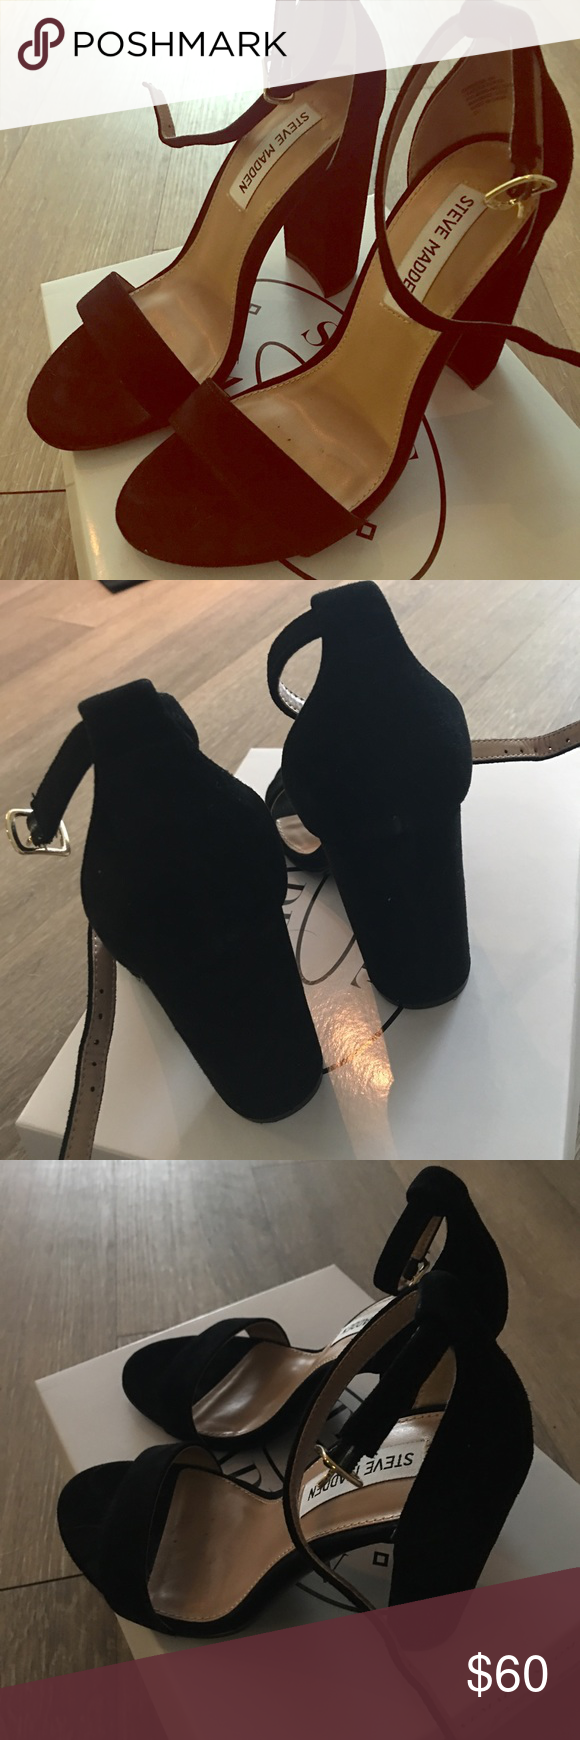 Steve Madden Black Suede Carrson Heel Steve Madden Carrson Heel in Black Suede, Only worn once for about 3 hours. In great condition Steve Madden Shoes Heels